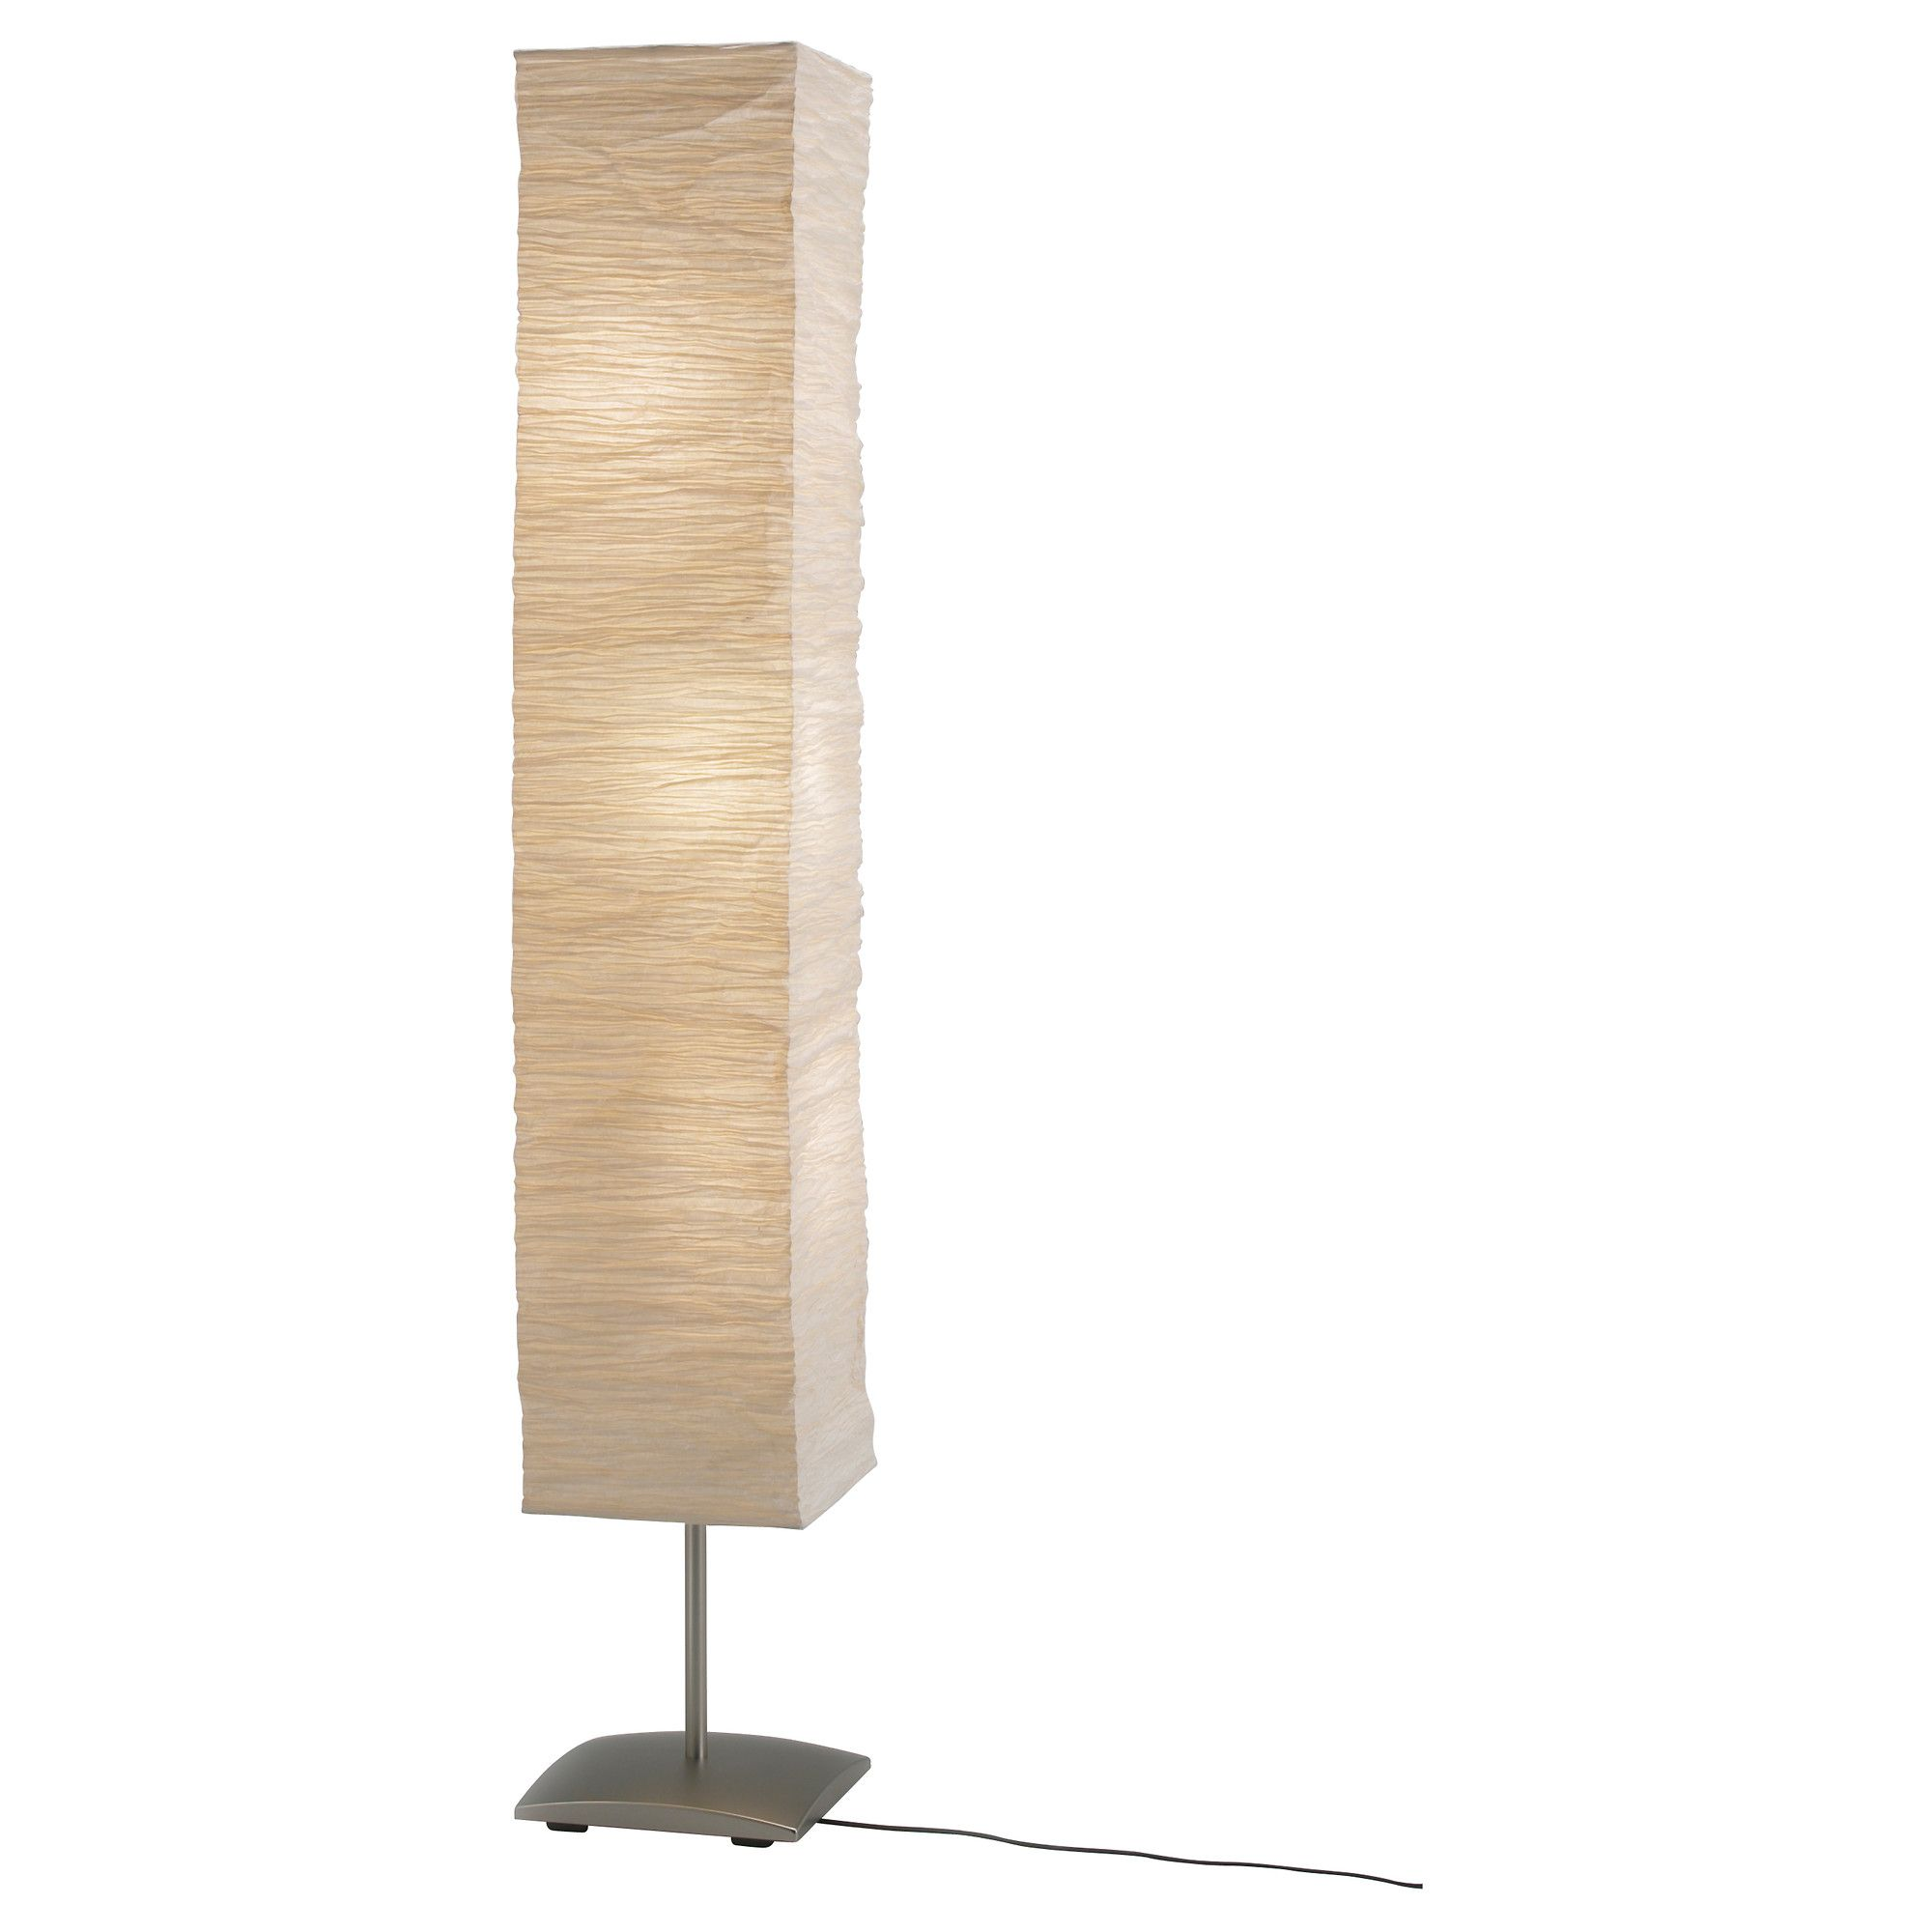 Paper Shade Floor Lamp Impressive Orgel Vreten Floor Lamp Natural Steel $1999 Article Number Design Decoration